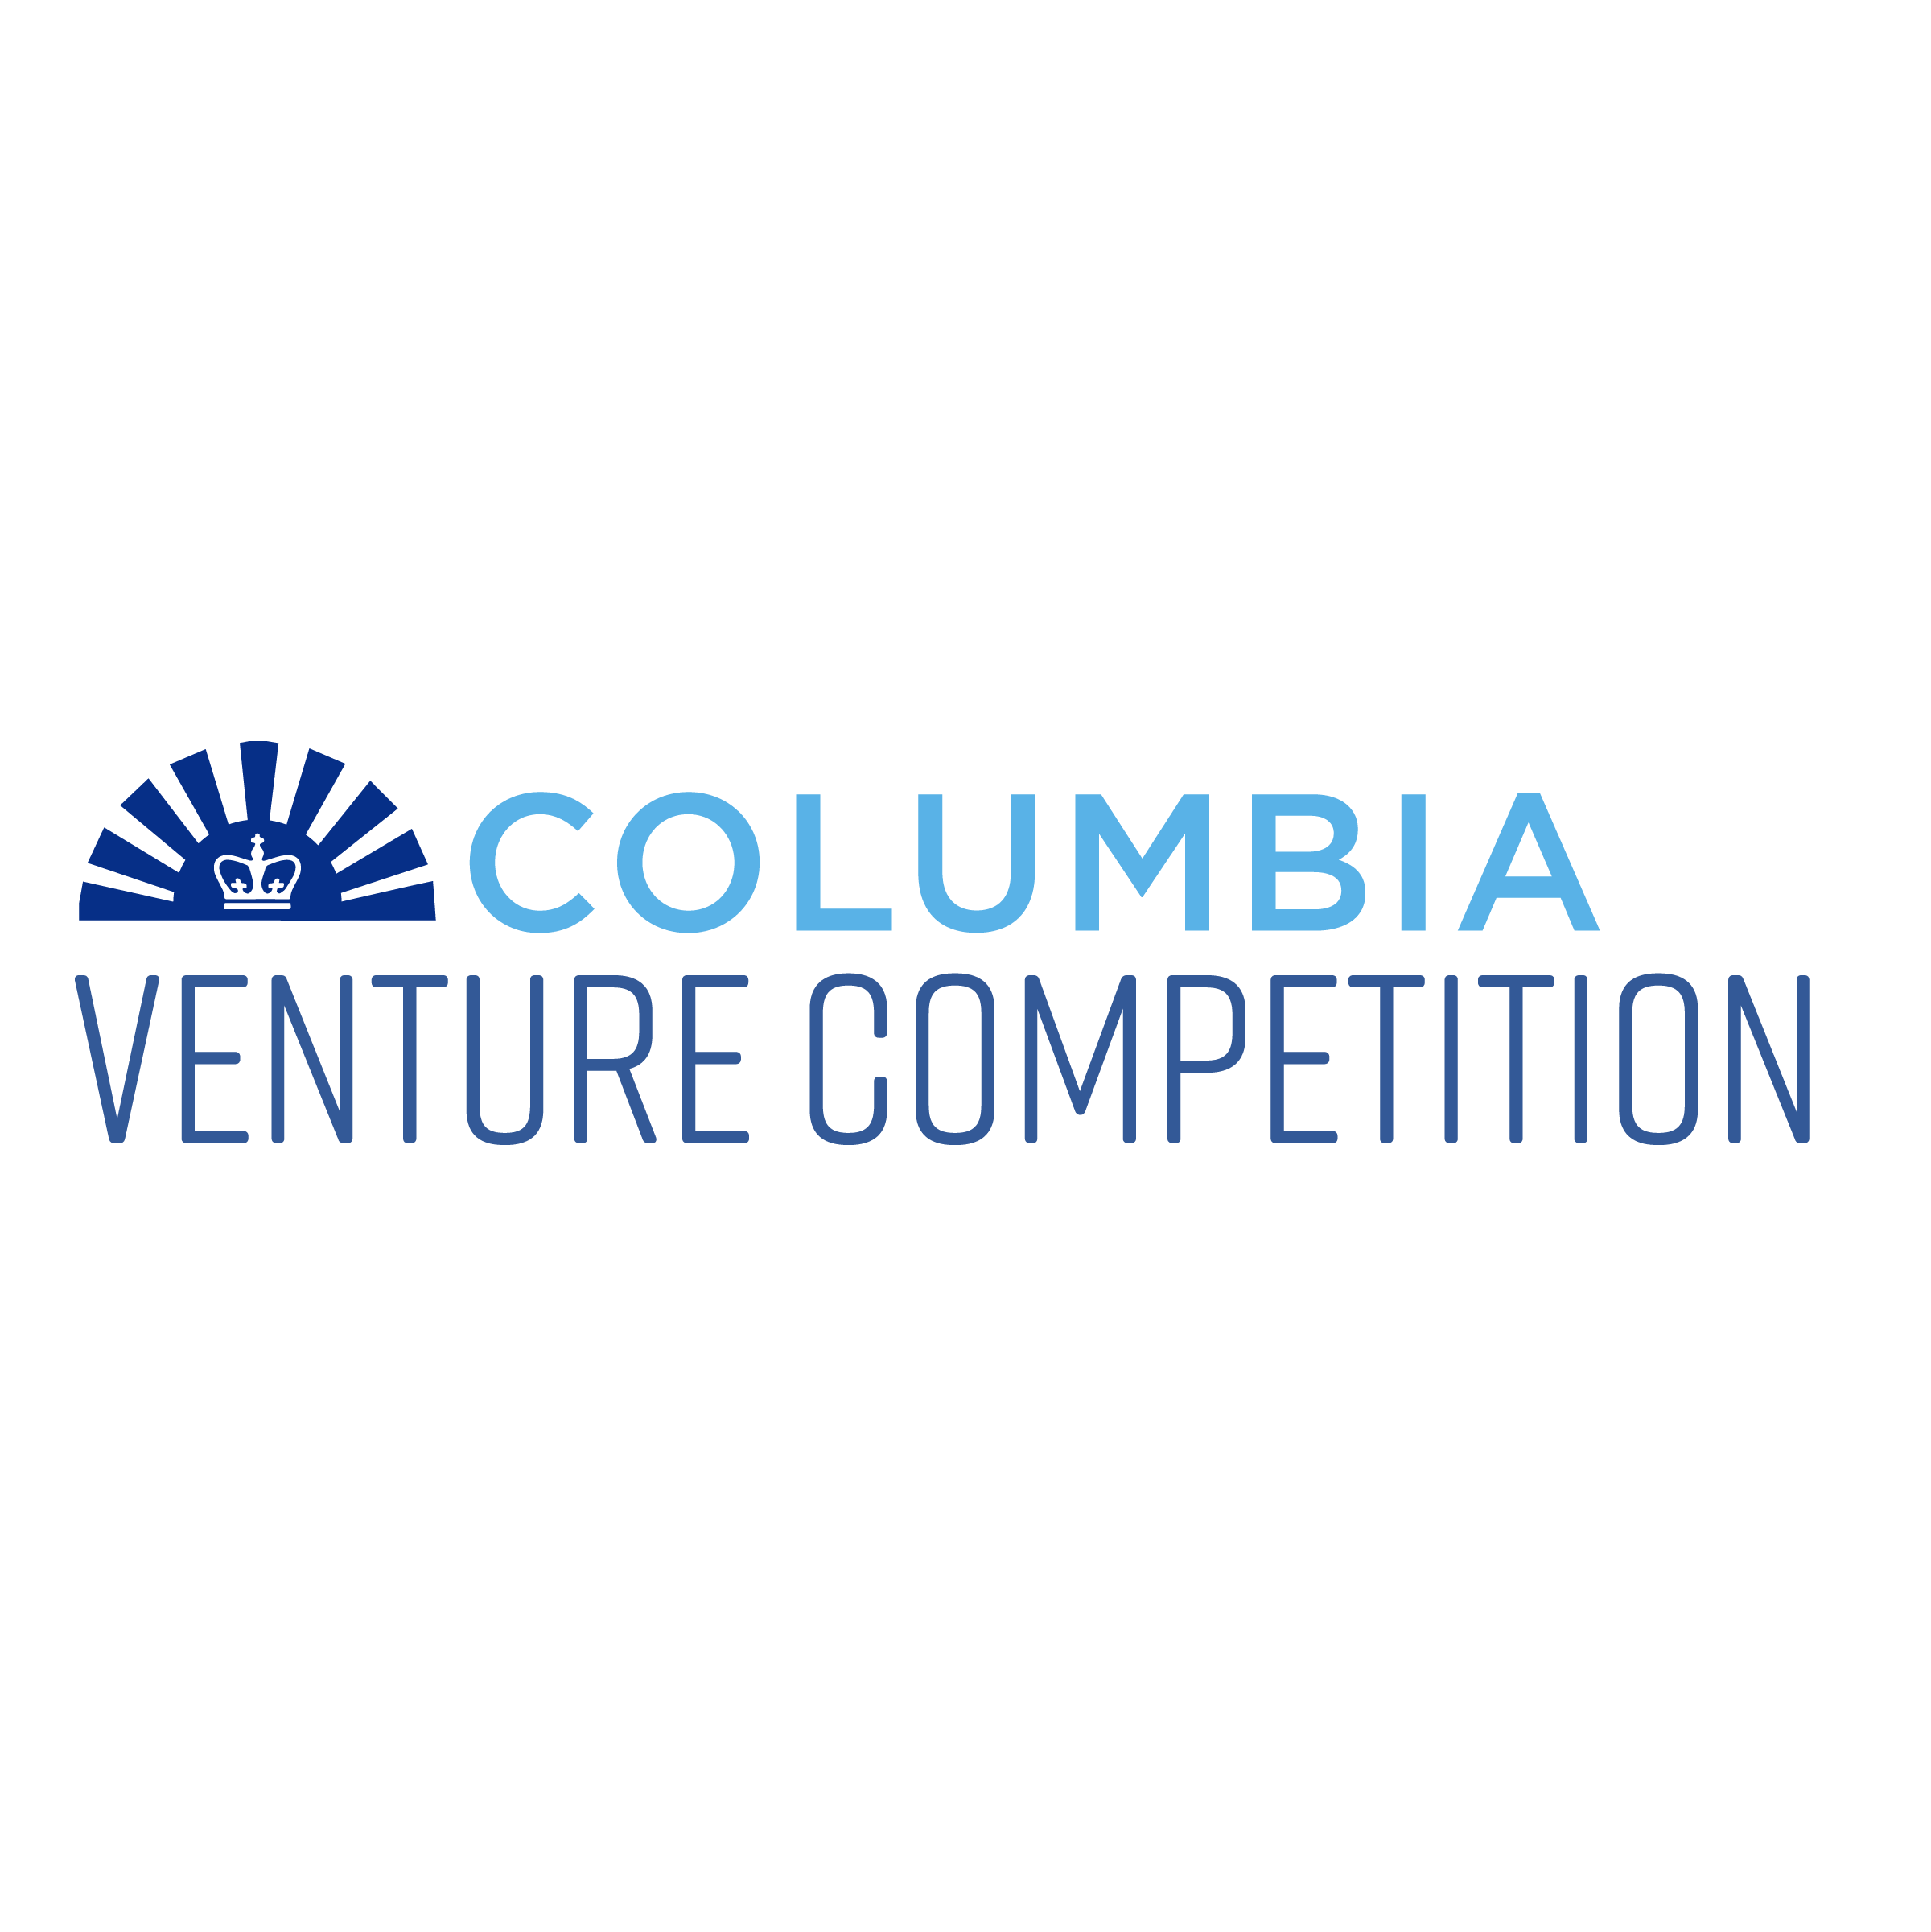 columbia venture competition 2018